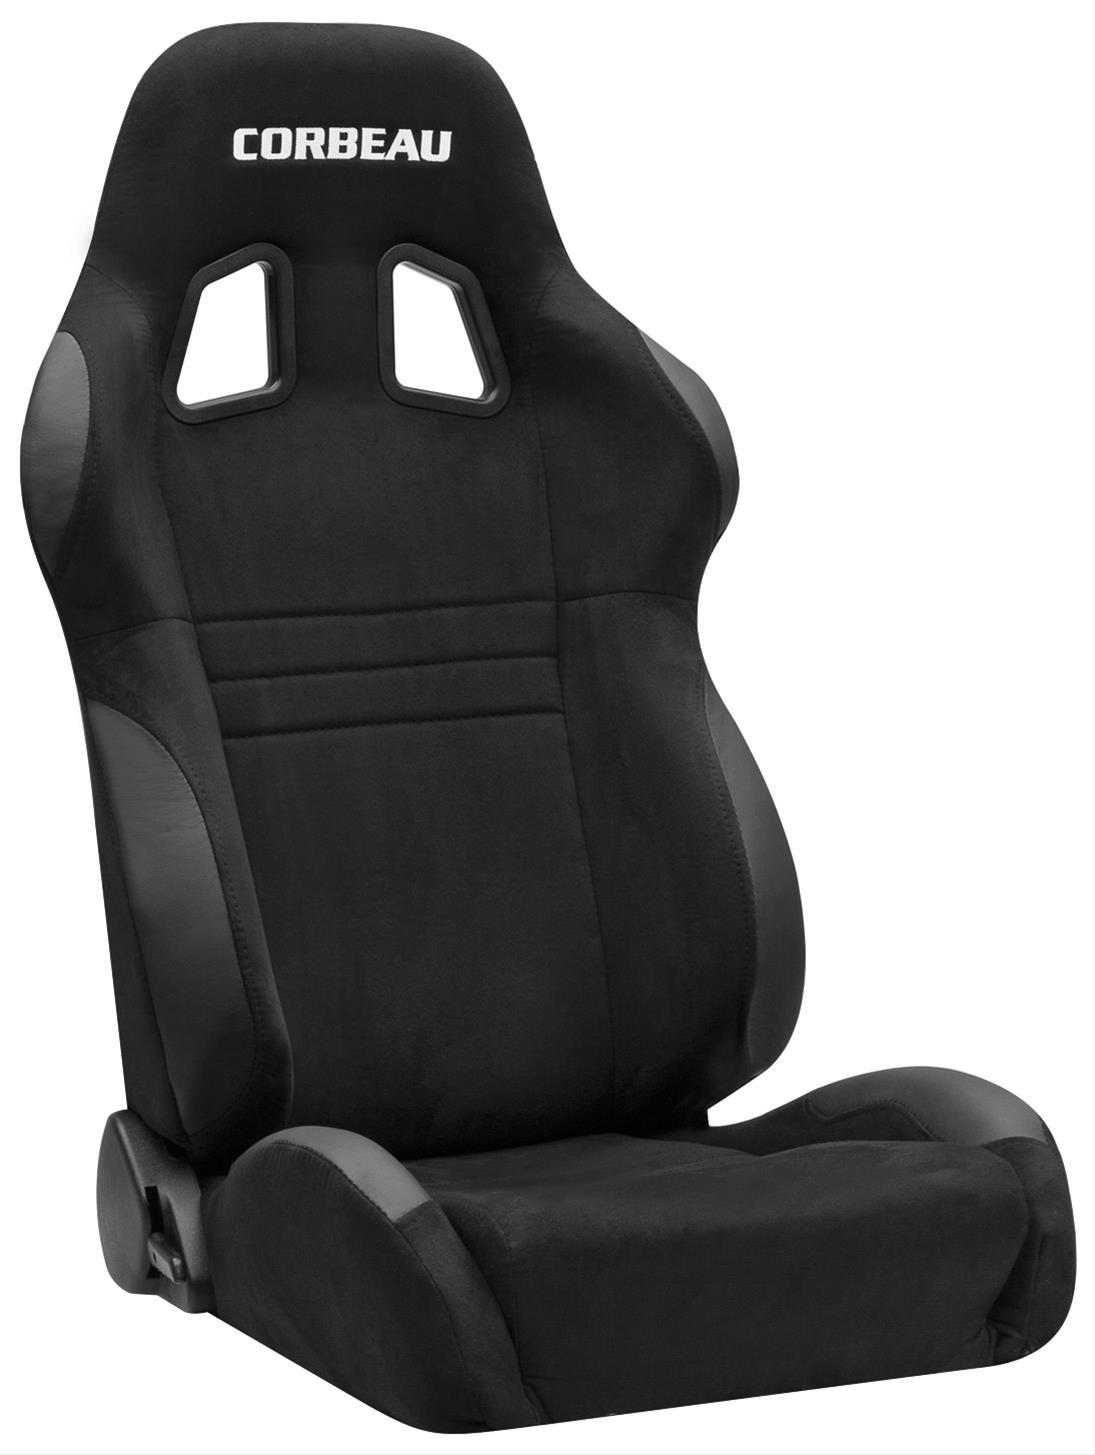 Anyone have experience with Sparco or Corbeau seats? - MyG37